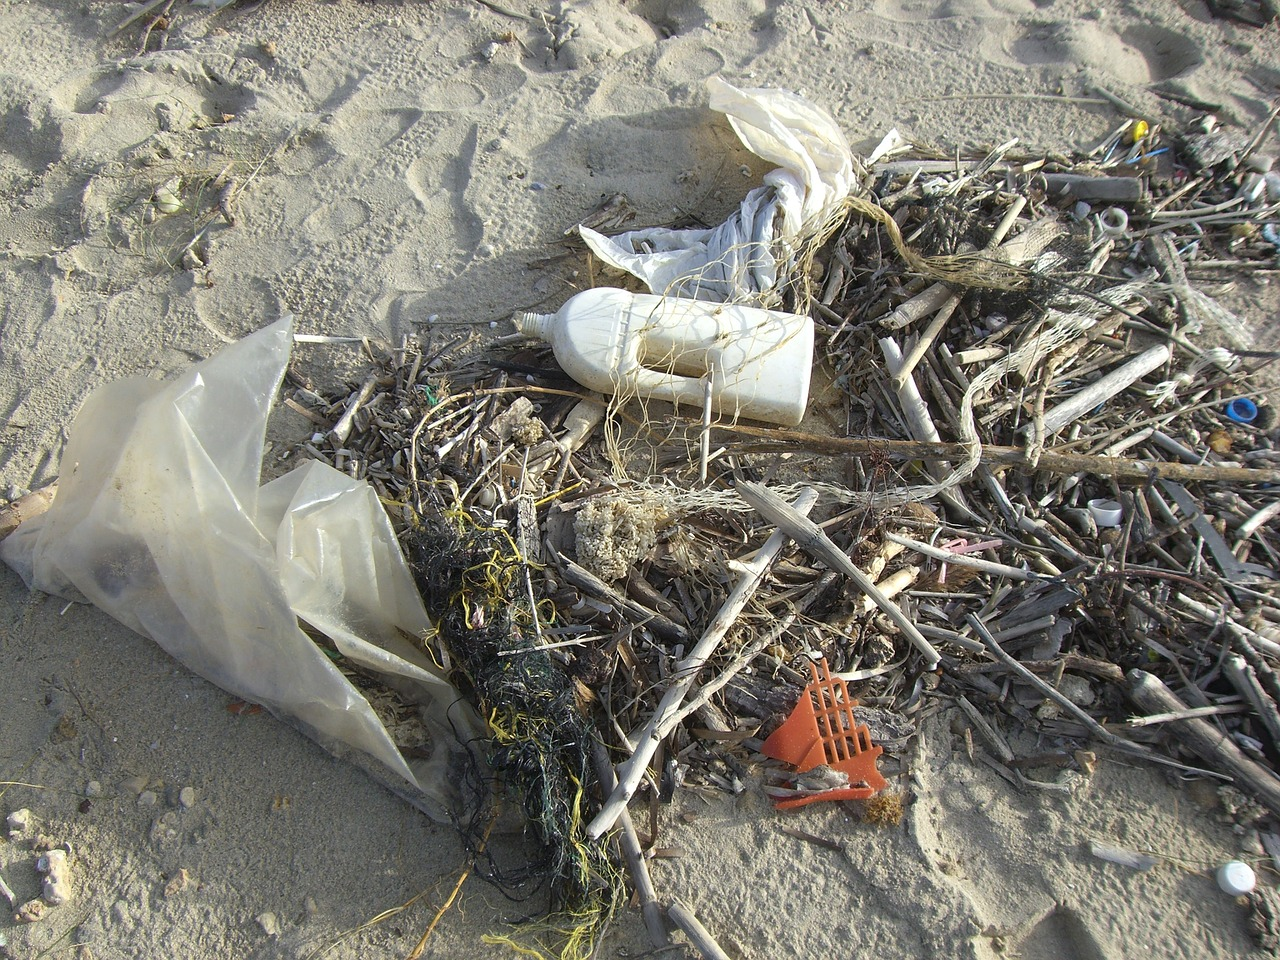 18 billion pounds - of plastic waste flows into the oceans every year from coastal regions.